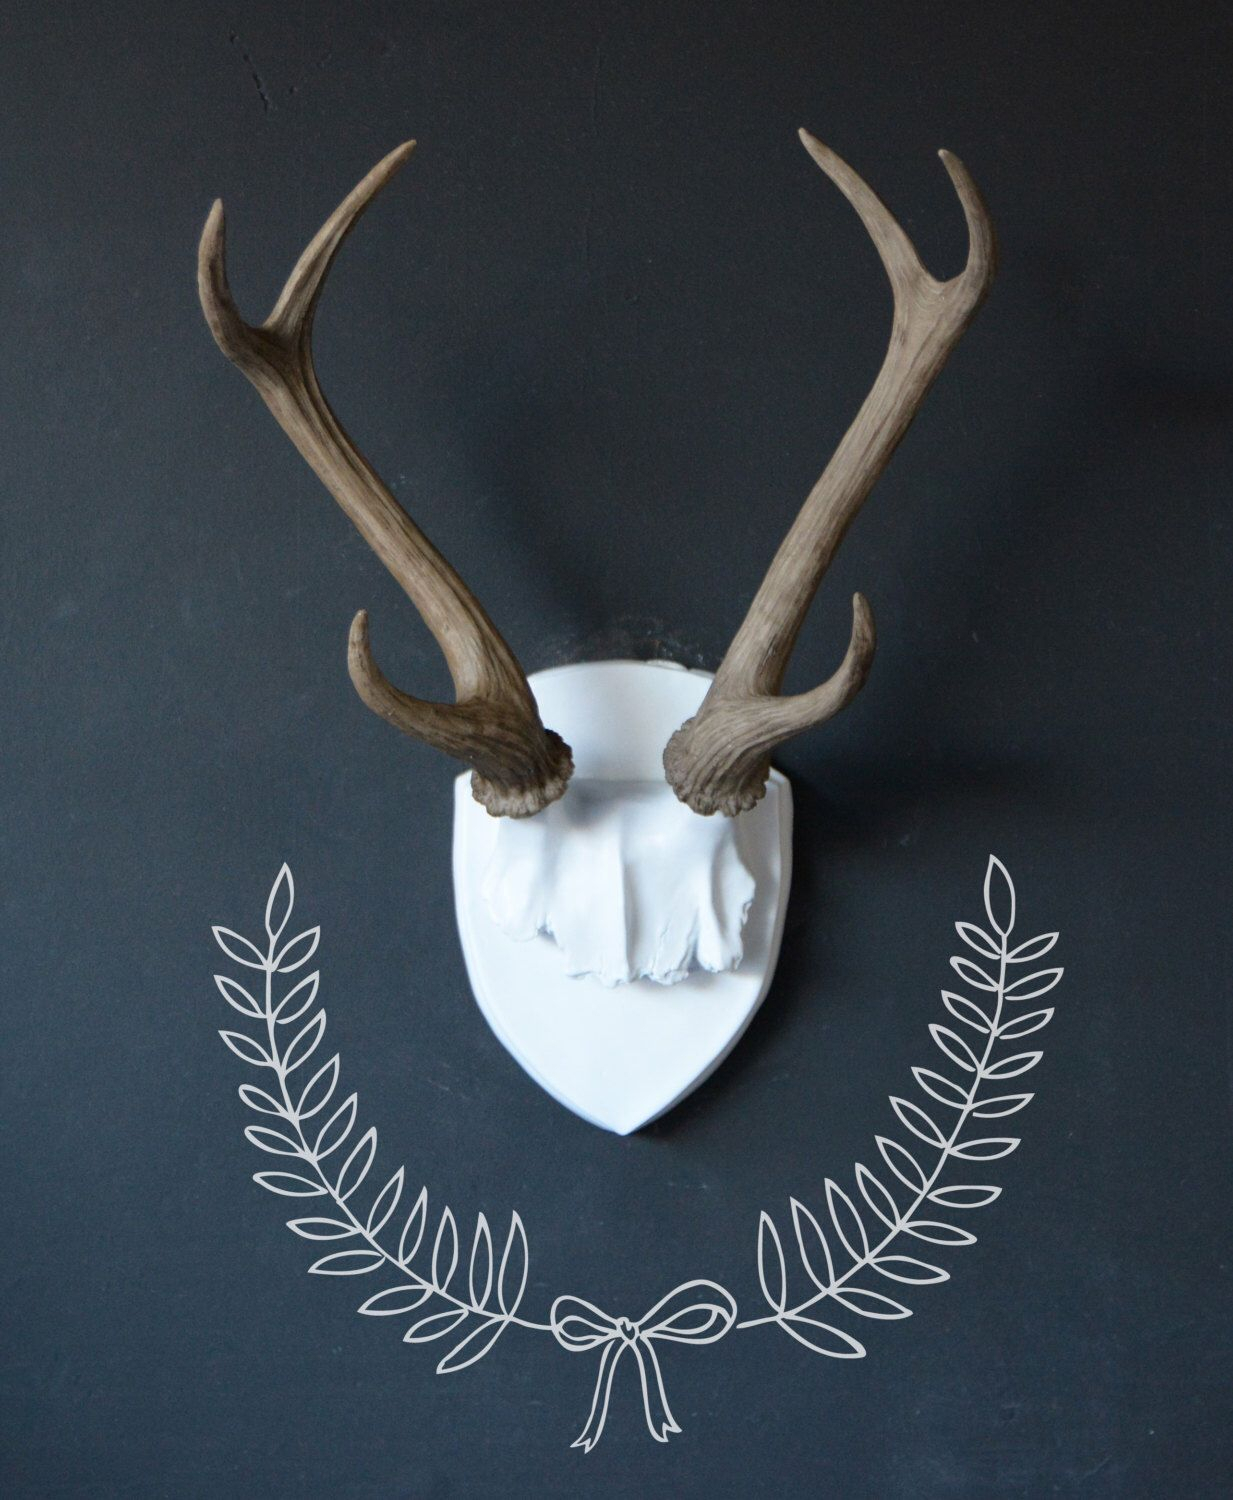 Large Faux Deer Antler Mount, White Plaque With Natural Antlers In Most Recently Released Atlantis Faux Taxidermy Wall Decor (Gallery 17 of 20)